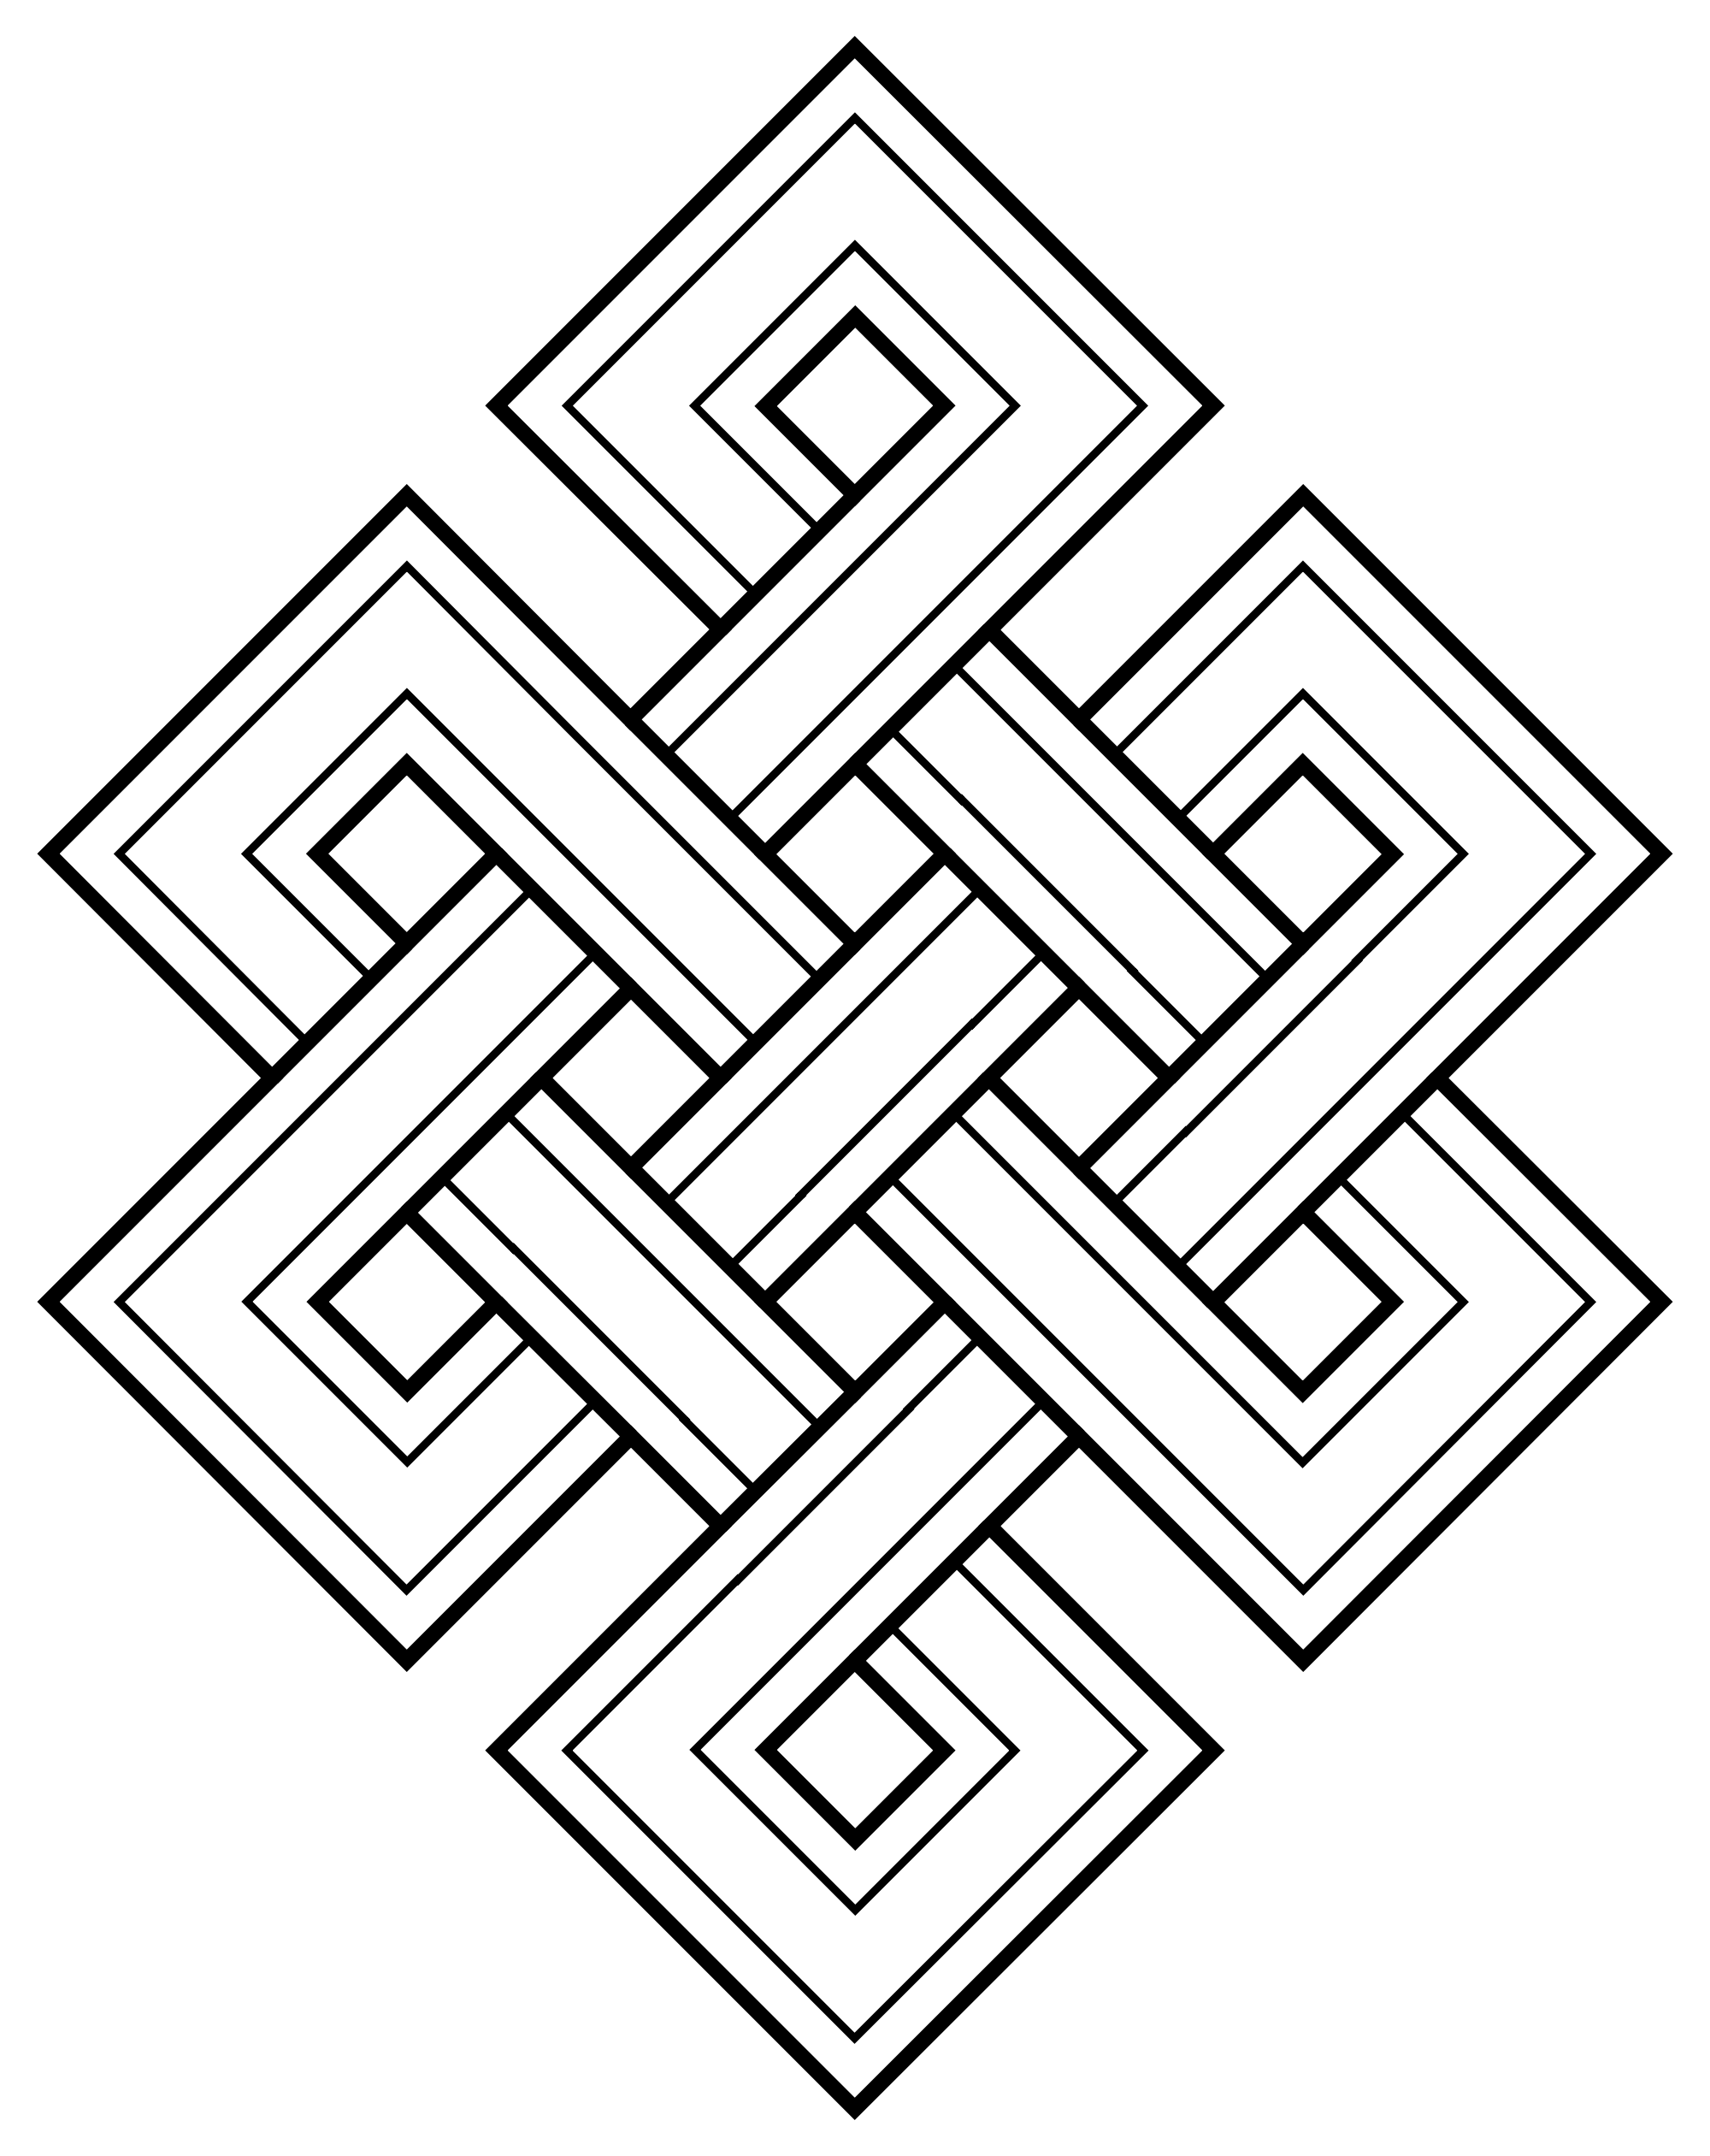 Drawing knots endless. File faith buddhism knot